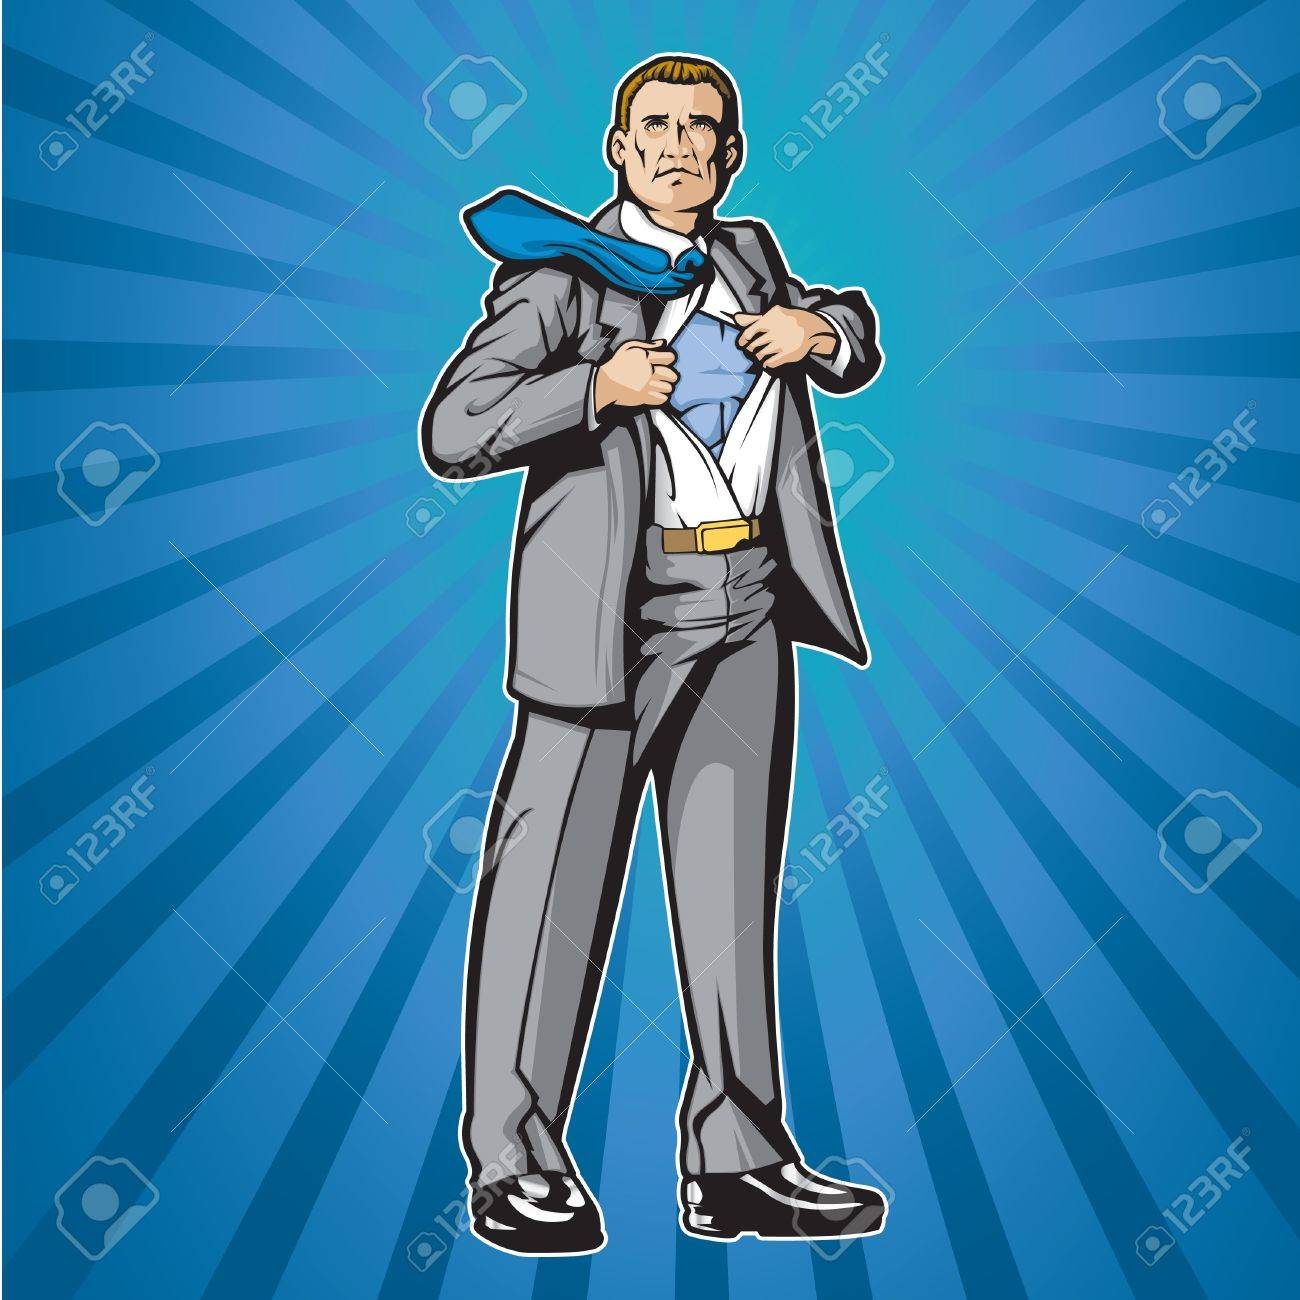 Business man opening shirt to show super hero suit Stock Vector - 14312677